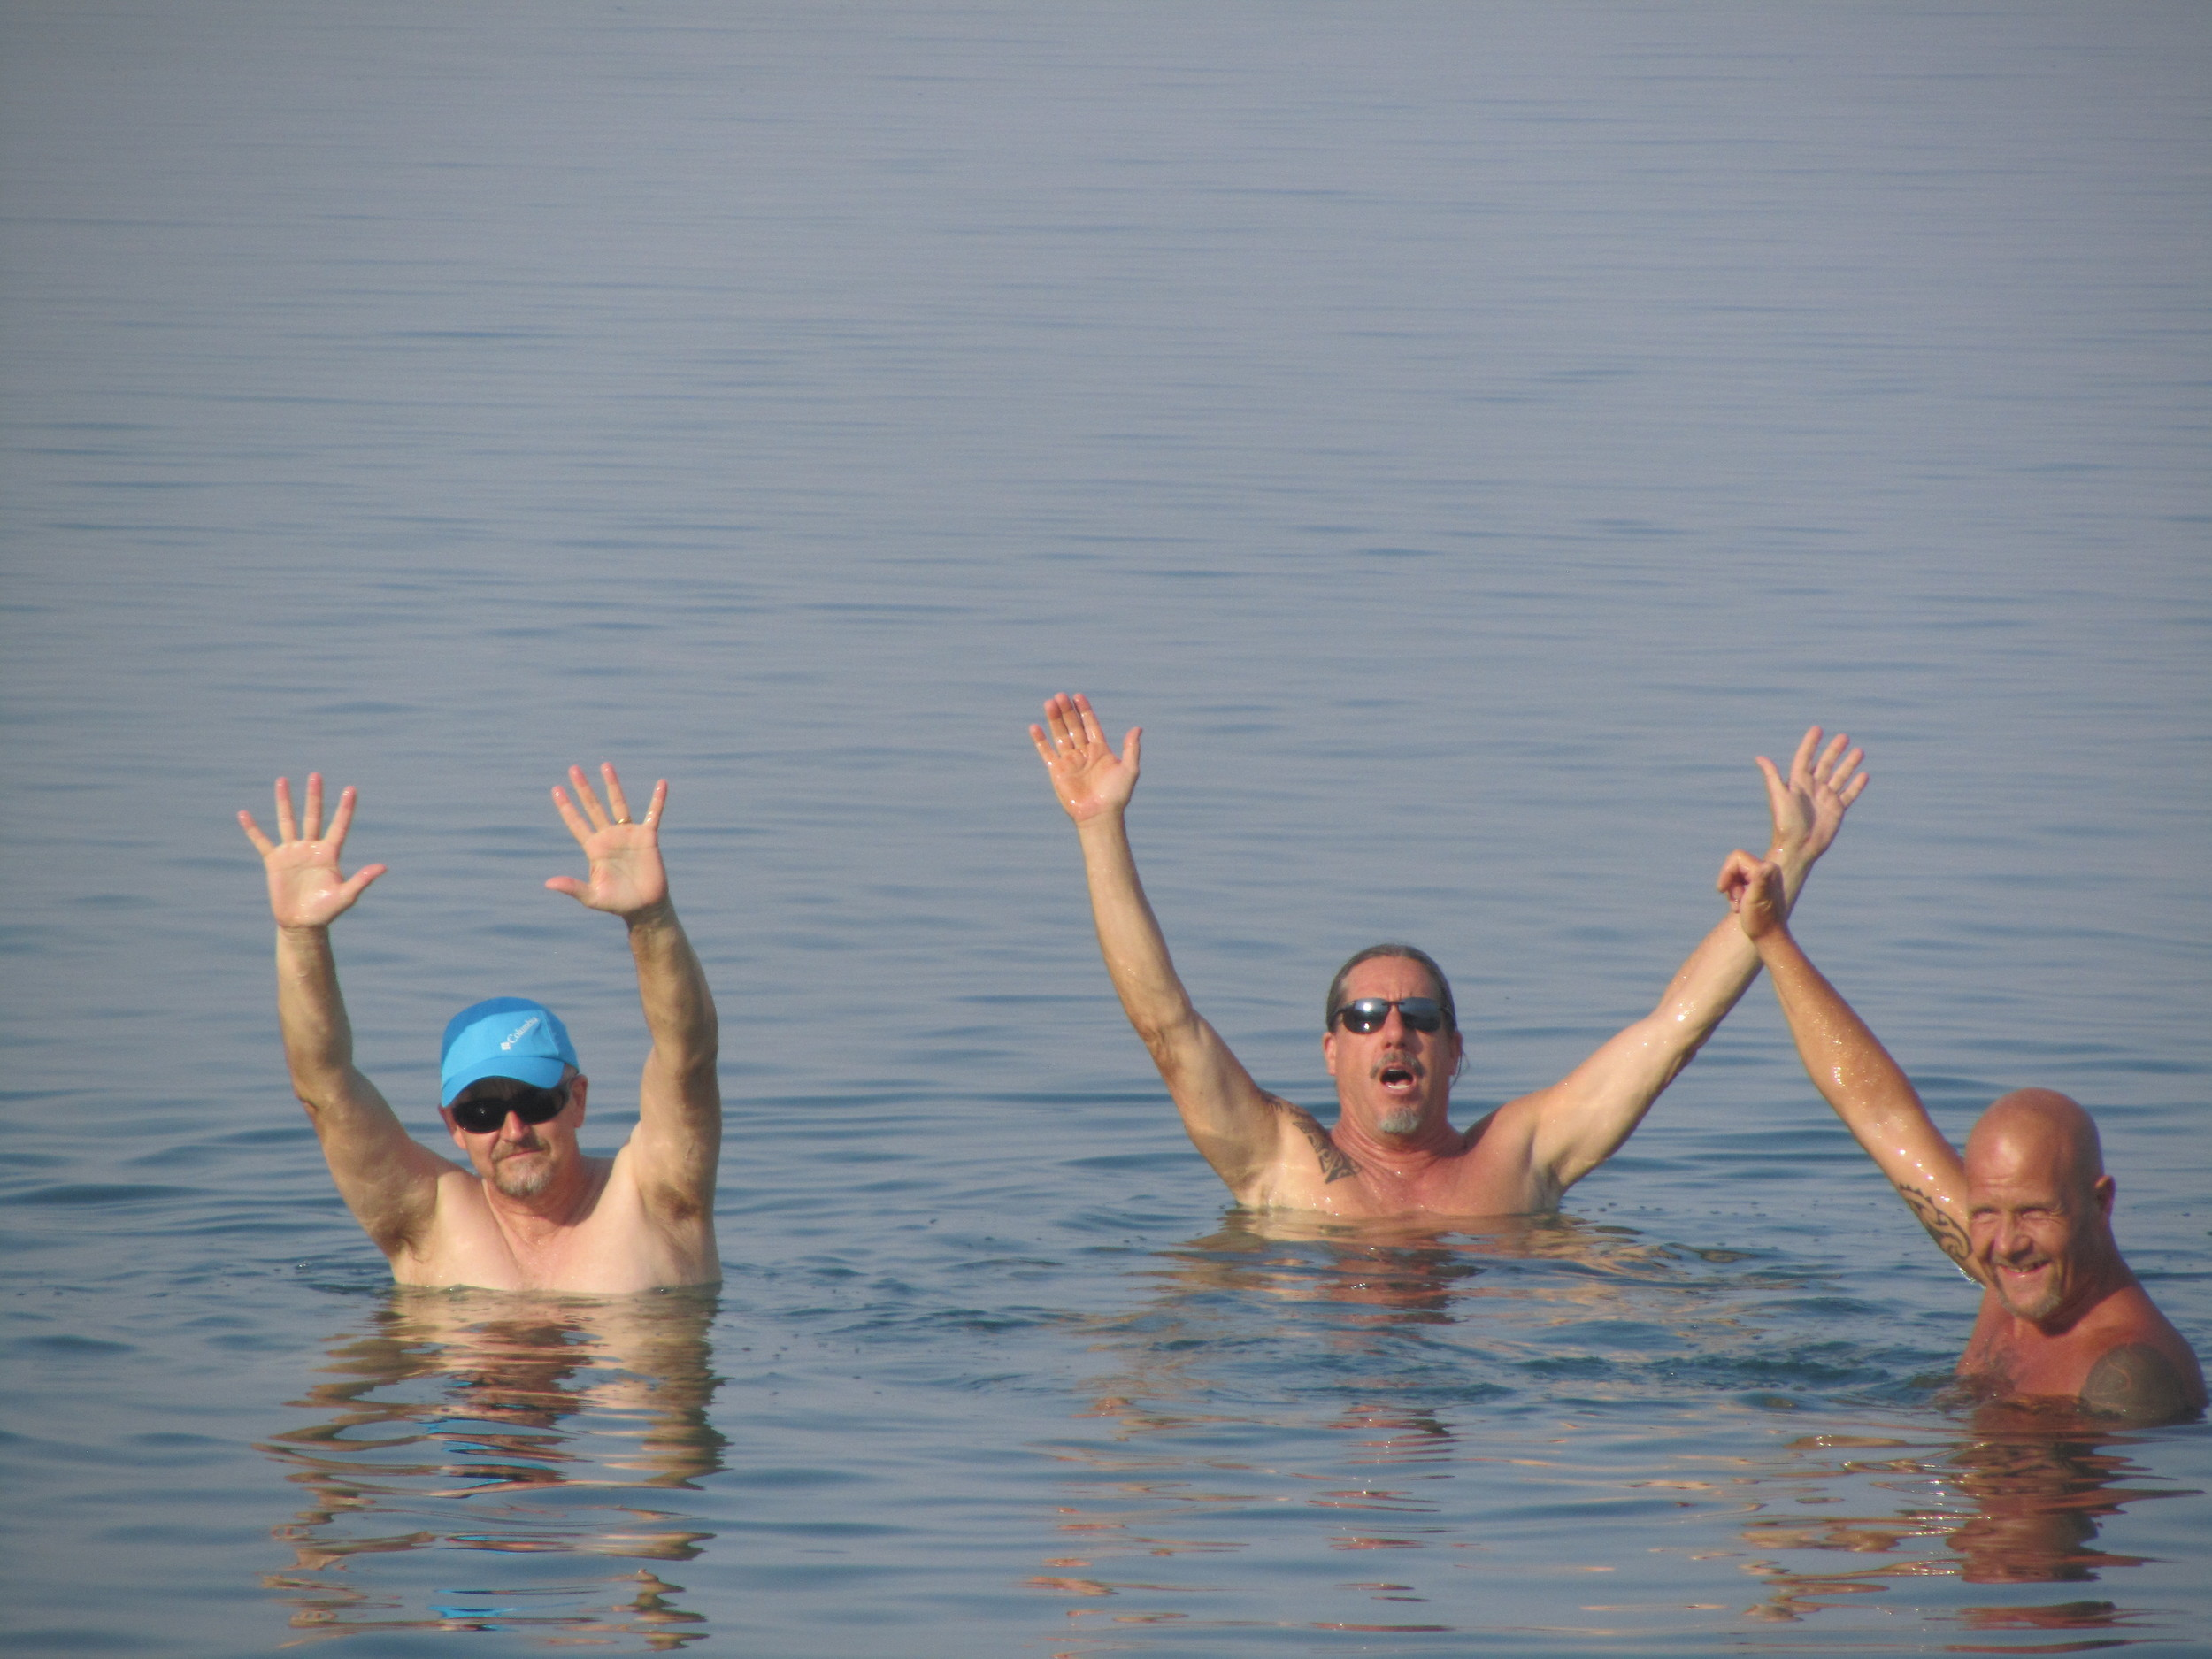 Art and Malcolm floating in the buoyant waters of the Dead Sea